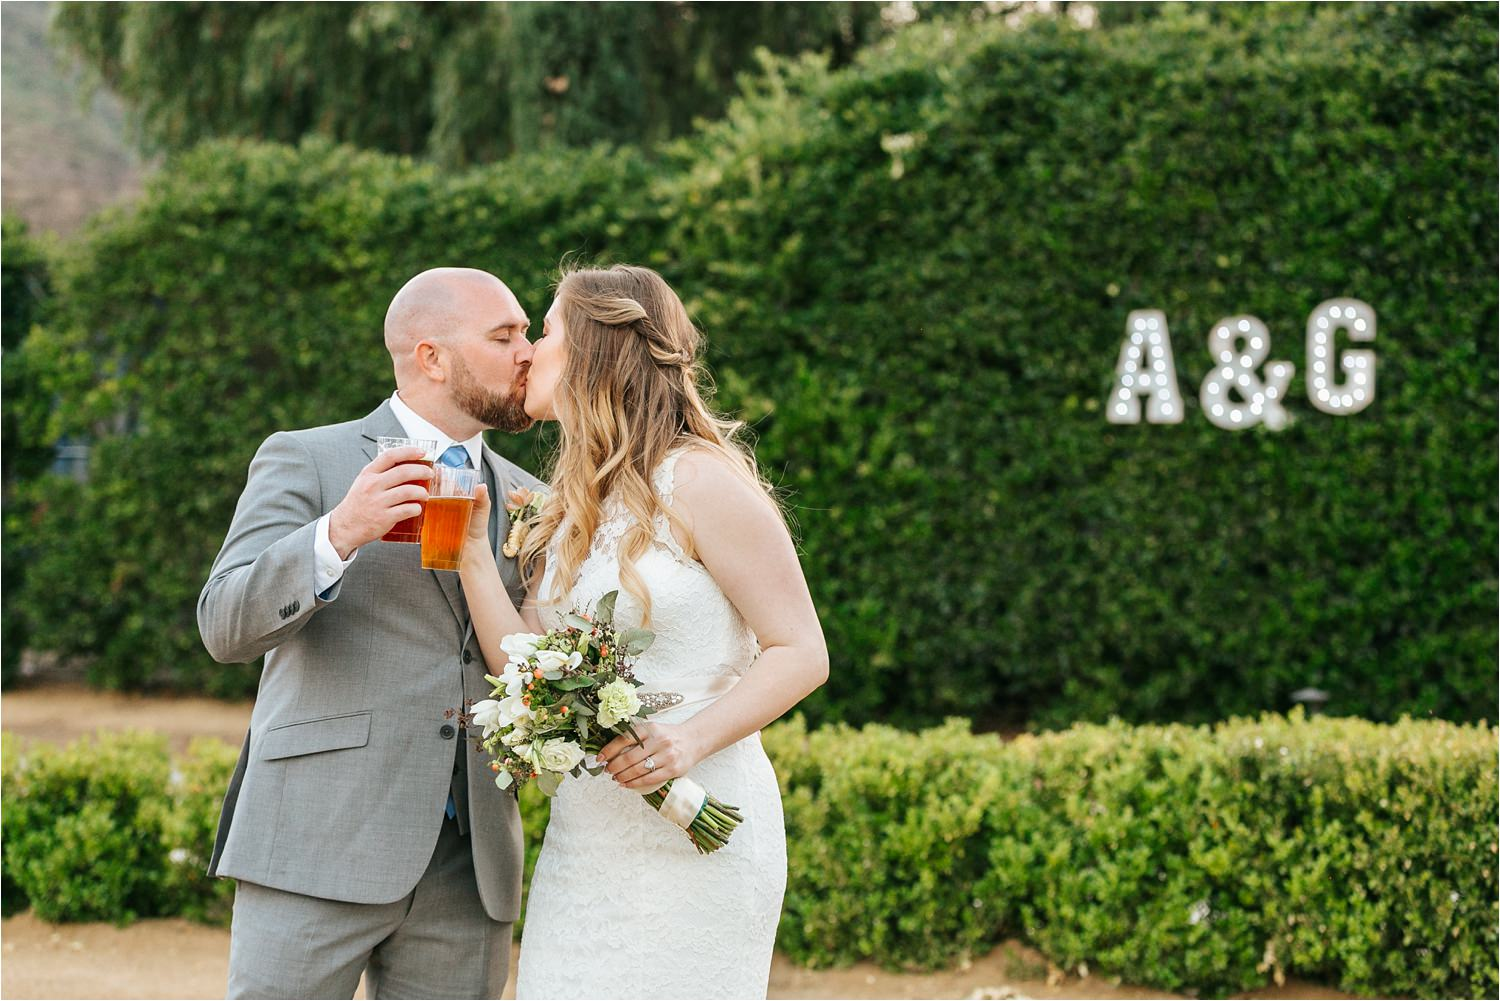 Bride and Groom Photos in California - Backyard Wedding - https://brittneyhannonphotography.com